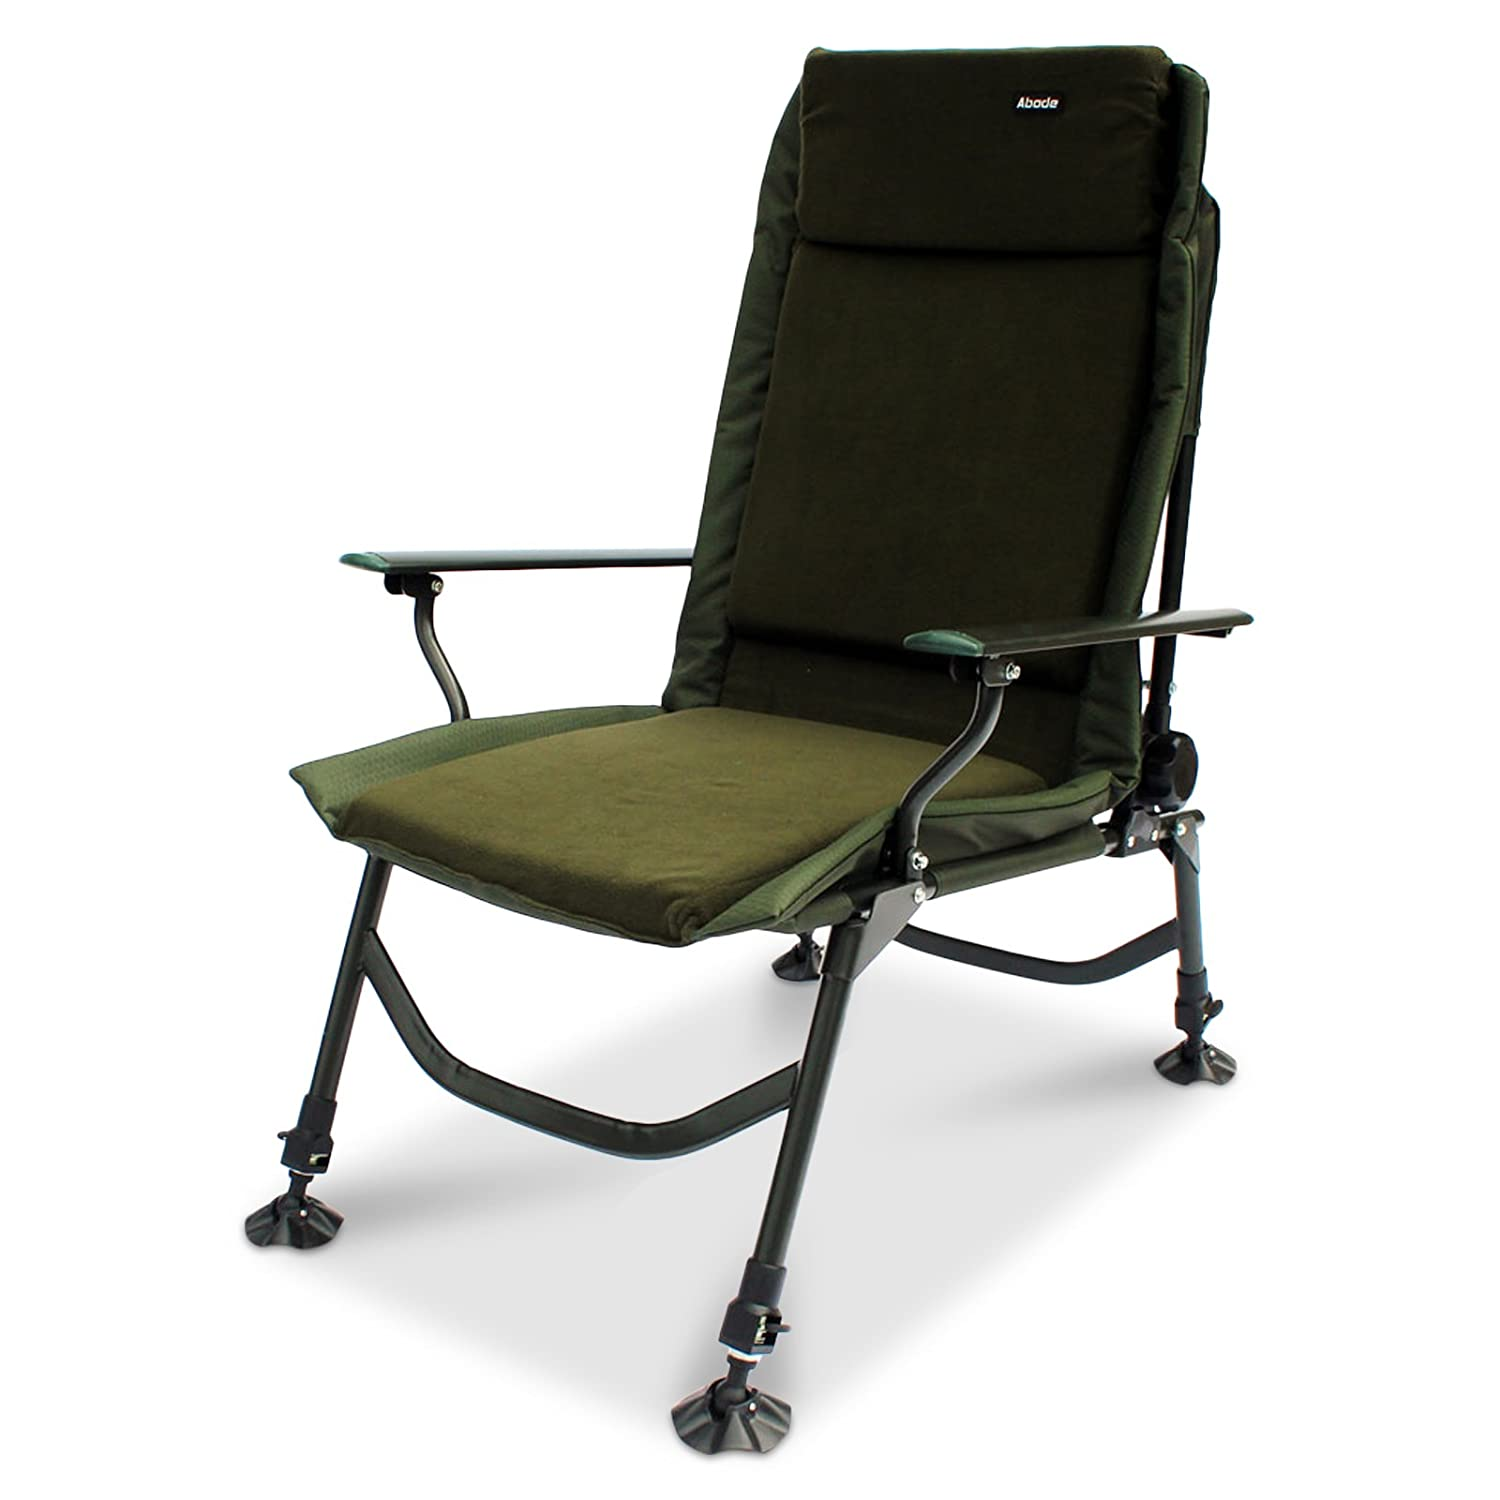 ABODE Air-Lite Alloy Fleece Easy-Arm Carp Fishing Camping Recliner Chair Koala Products